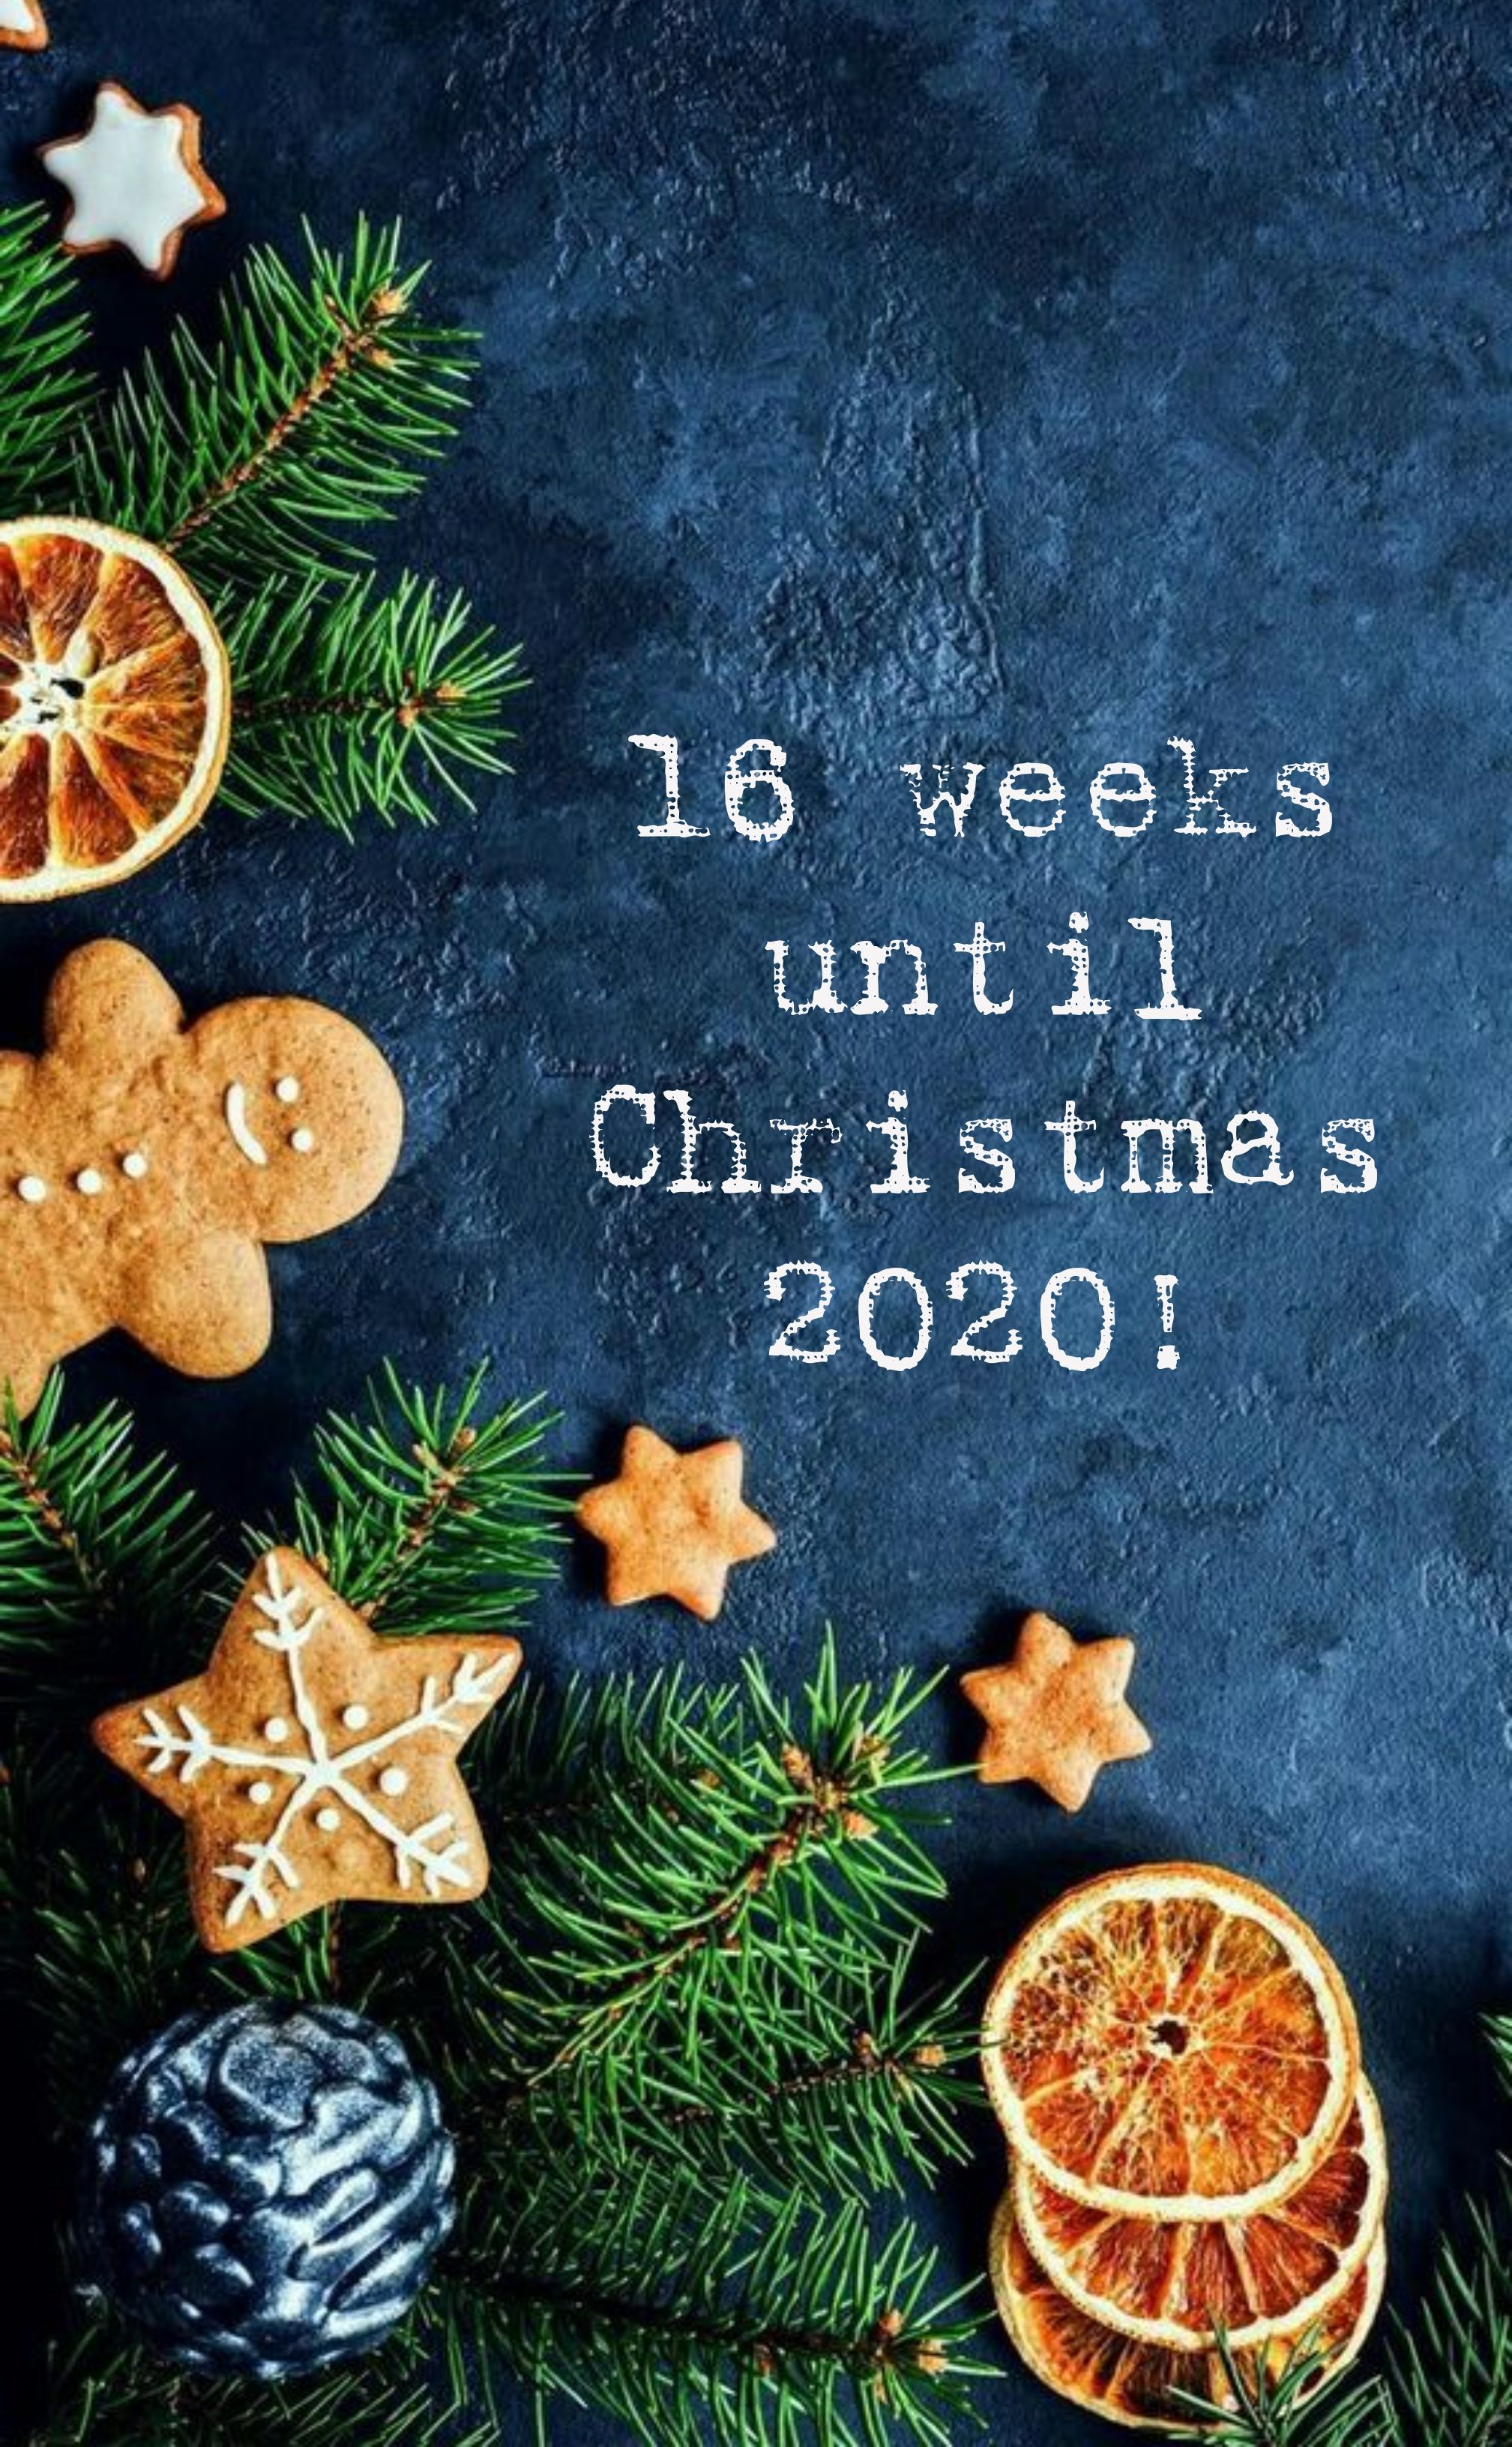 Fabric With Count Down For Christmas 2020 16 weeks until Christmas 2020 | Weeks until christmas, Fabric